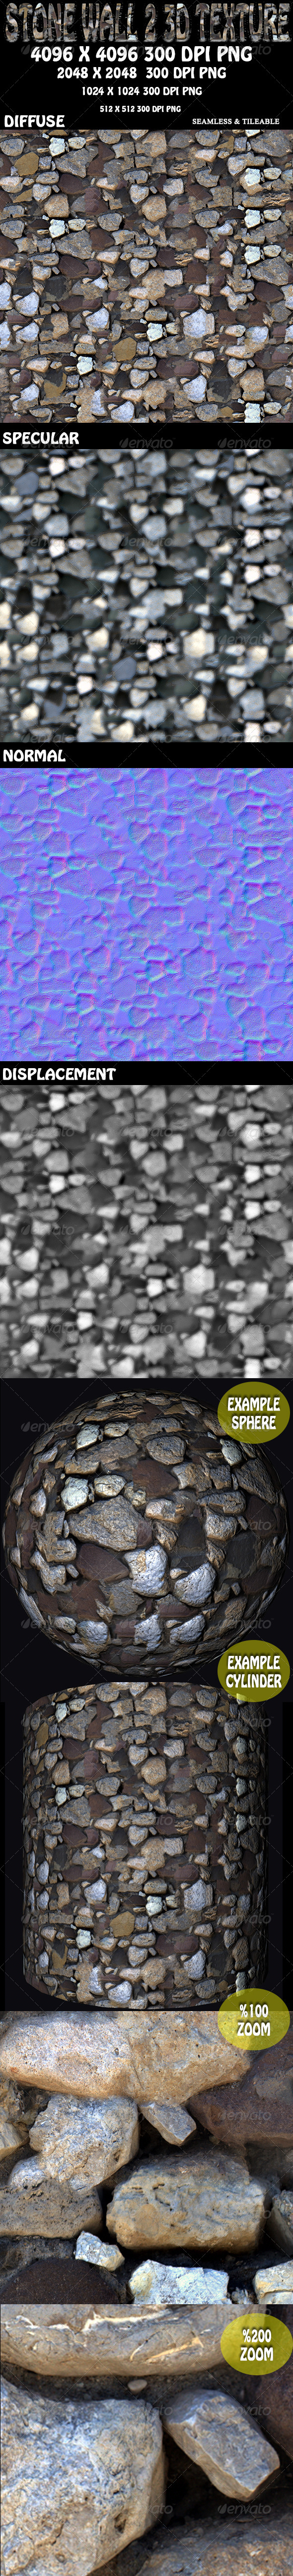 Stone Wall 2 3D Texture - 3DOcean Item for Sale